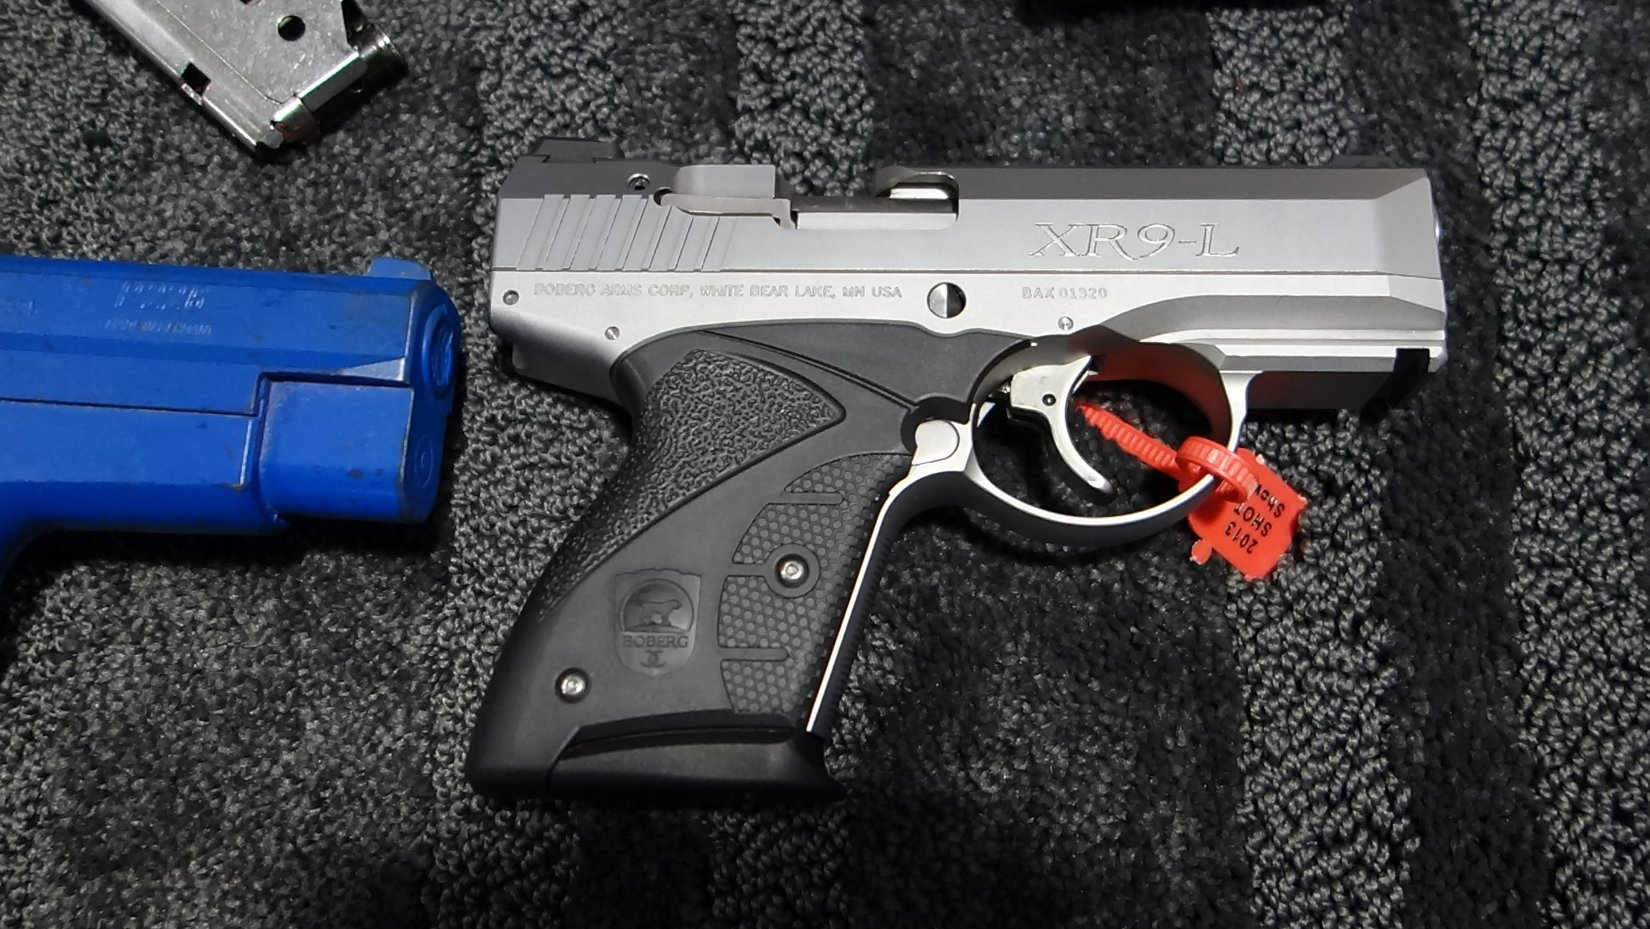 Boberg Arms XR9 L Long Stroke 9mm Sub Compact Semi Auto Pistol with Rotating Barrel SHOT Show 2013 David Crane DefenseReview.com DR 8 Boberg Arms XR9 L Long Stroke, Rotating Barrel Sub Compact Semi Auto 9mm Pistol for Concealed Carry (CCW): Big Gun Ballistic Performance in a Small Package! (Video!)